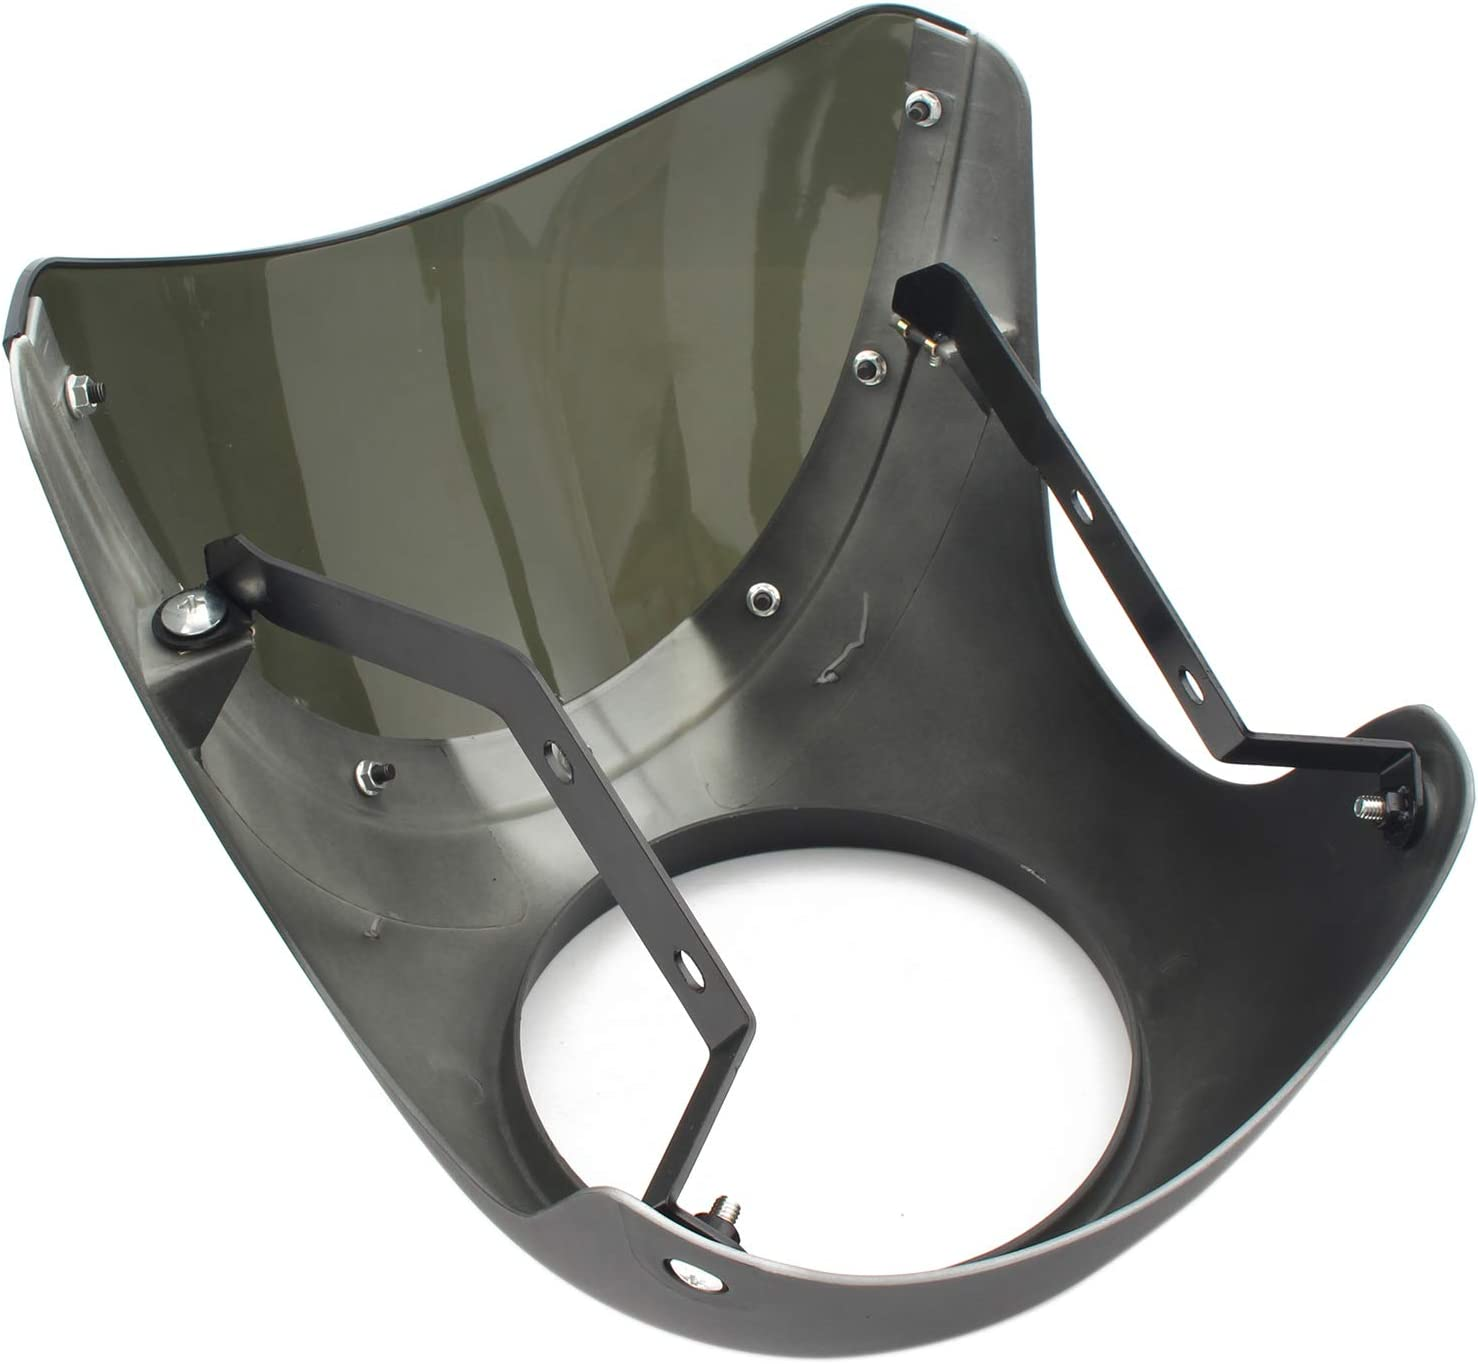 D DOLITY Motorcycle Left /&Right Side View Rear Mirrors Installed On Fairing for Honda